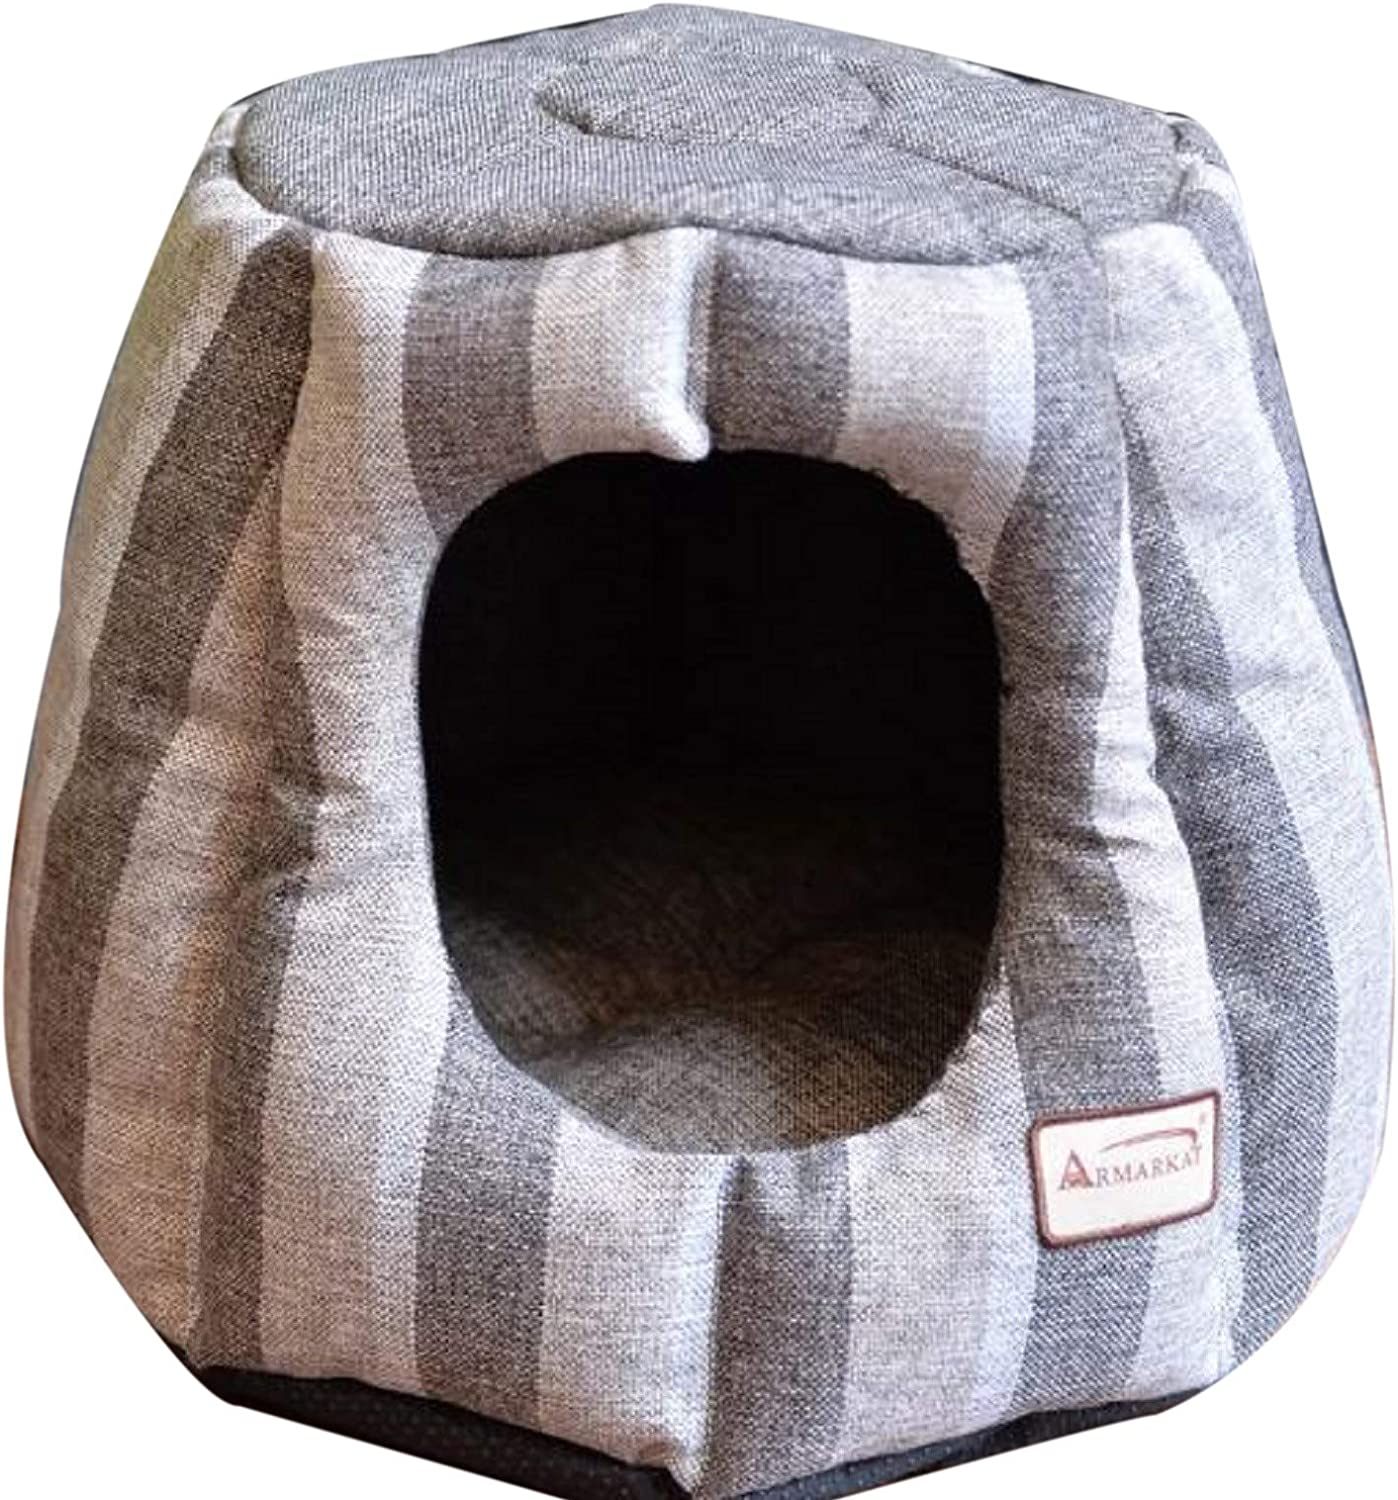 Dome Pet Bed. Cat Dome Pet Bed Waterproof Skid Free Base